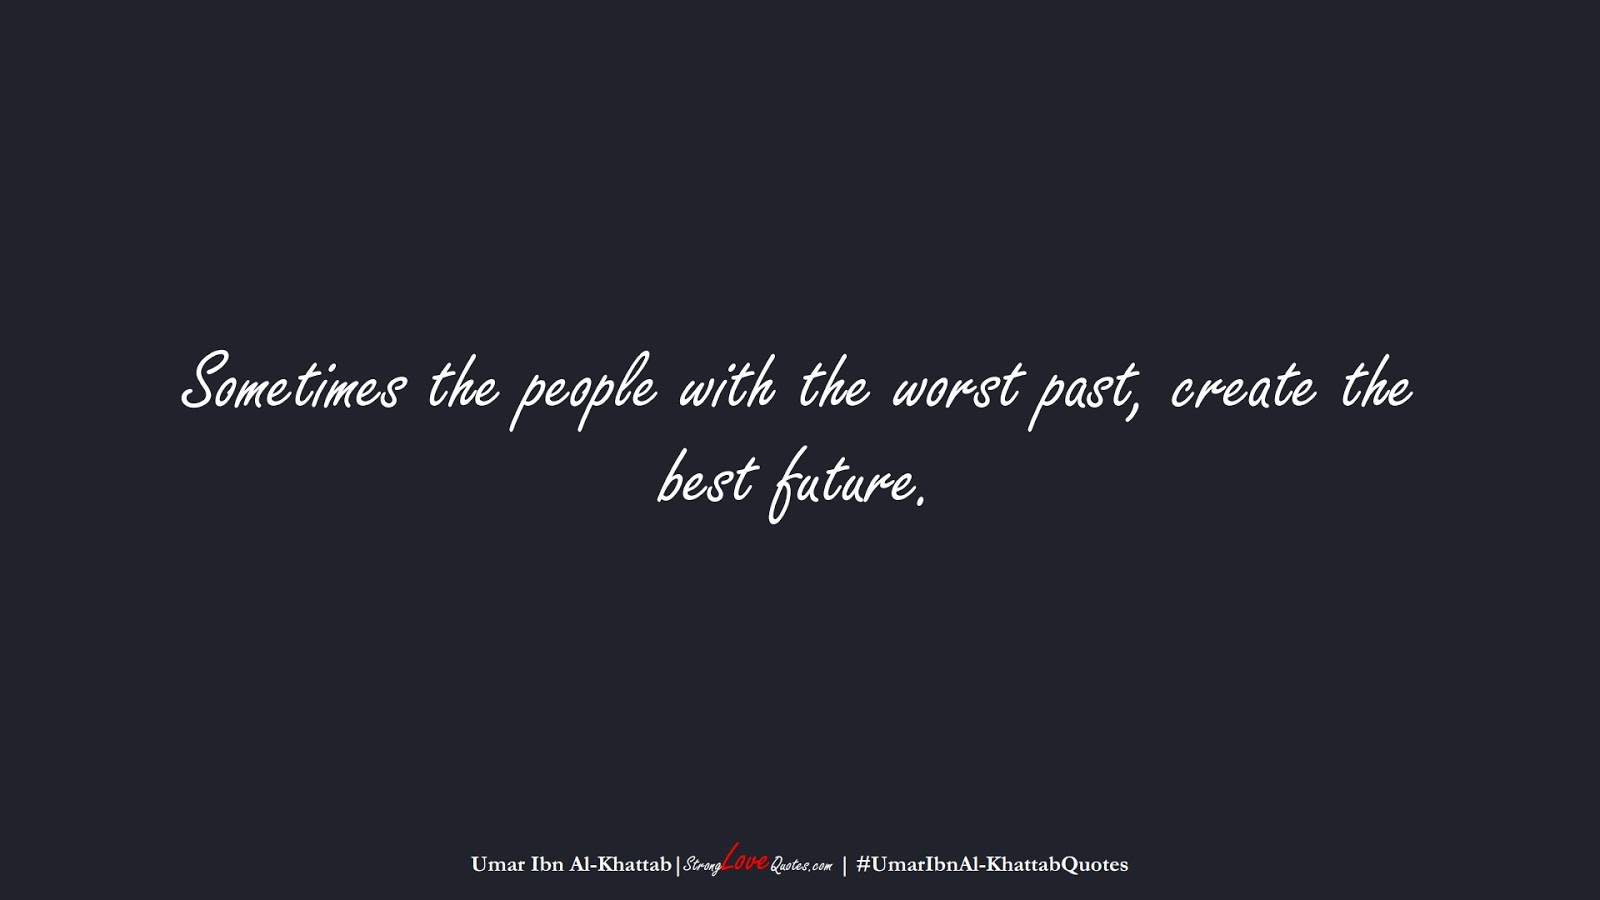 Sometimes the people with the worst past, create the best future. (Umar Ibn Al-Khattab);  #UmarIbnAl-KhattabQuotes